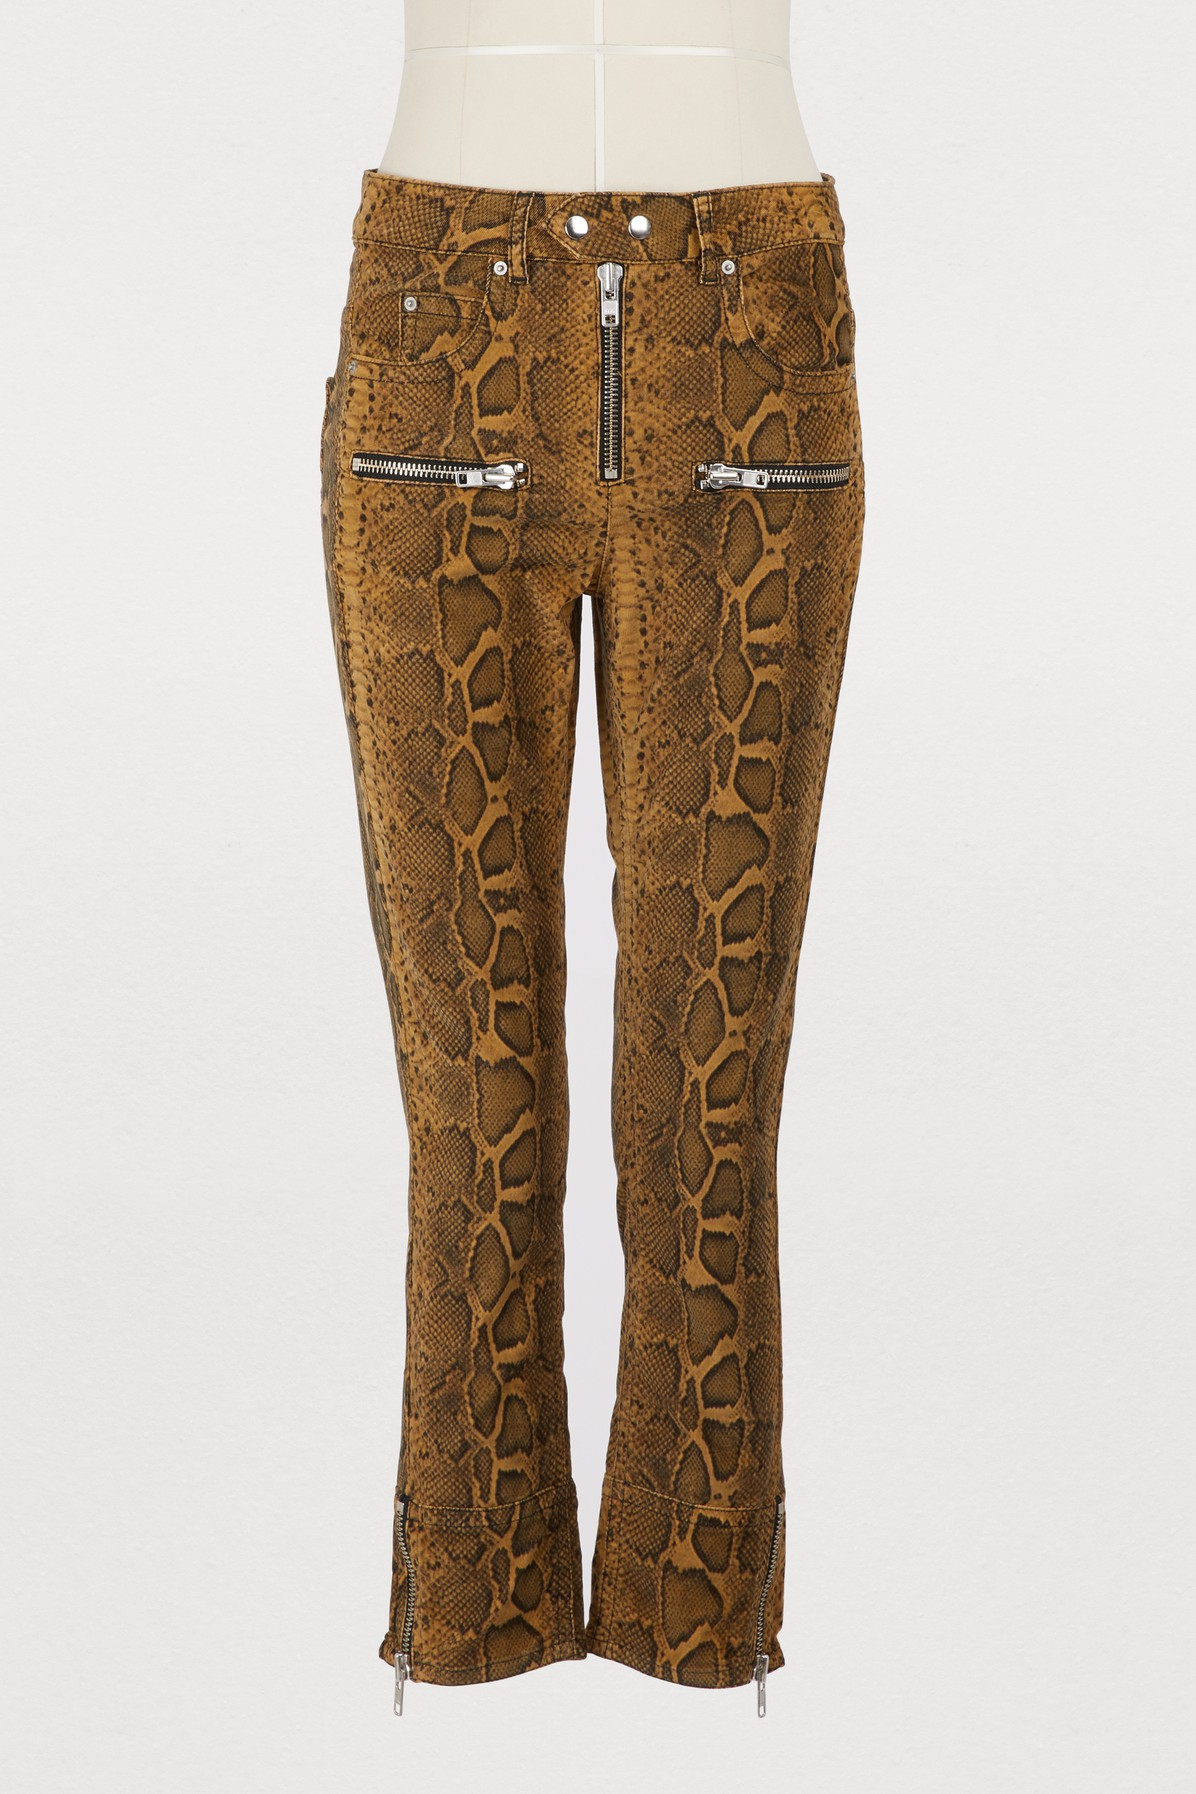 52987008bf Shop Isabel Marant Skinny on sale at the Marie Claire Edit